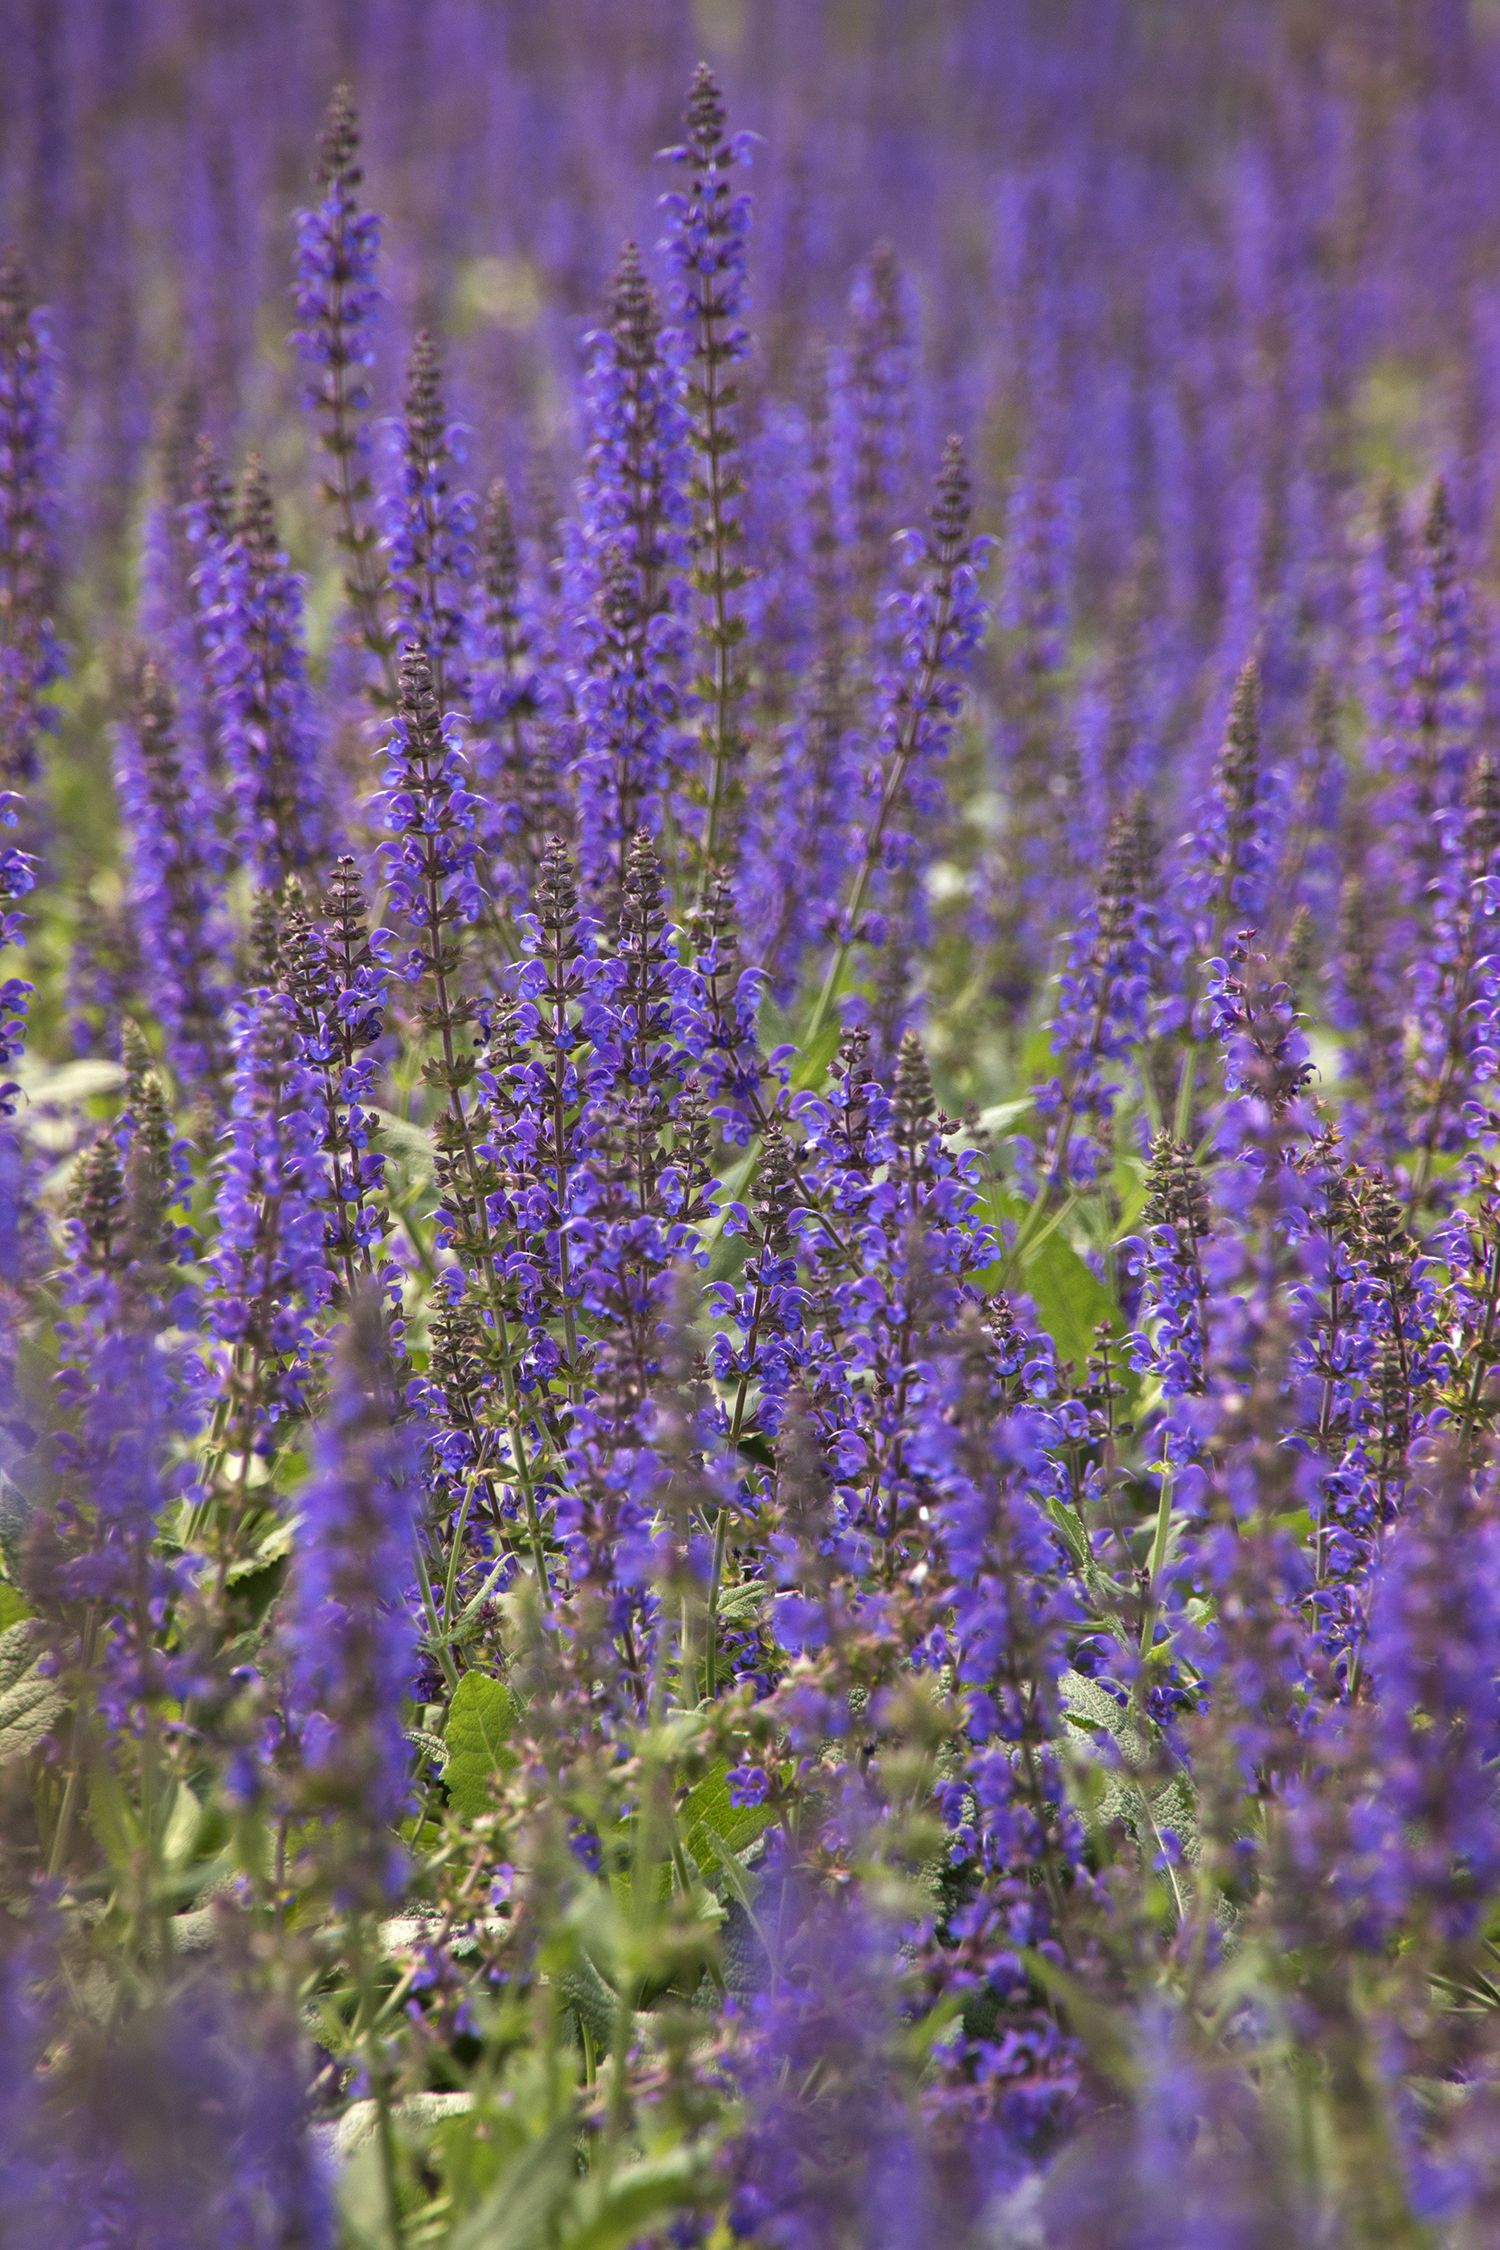 May Night Salvia Tall Spikes Of Indigo Blue Flowers Top Compact